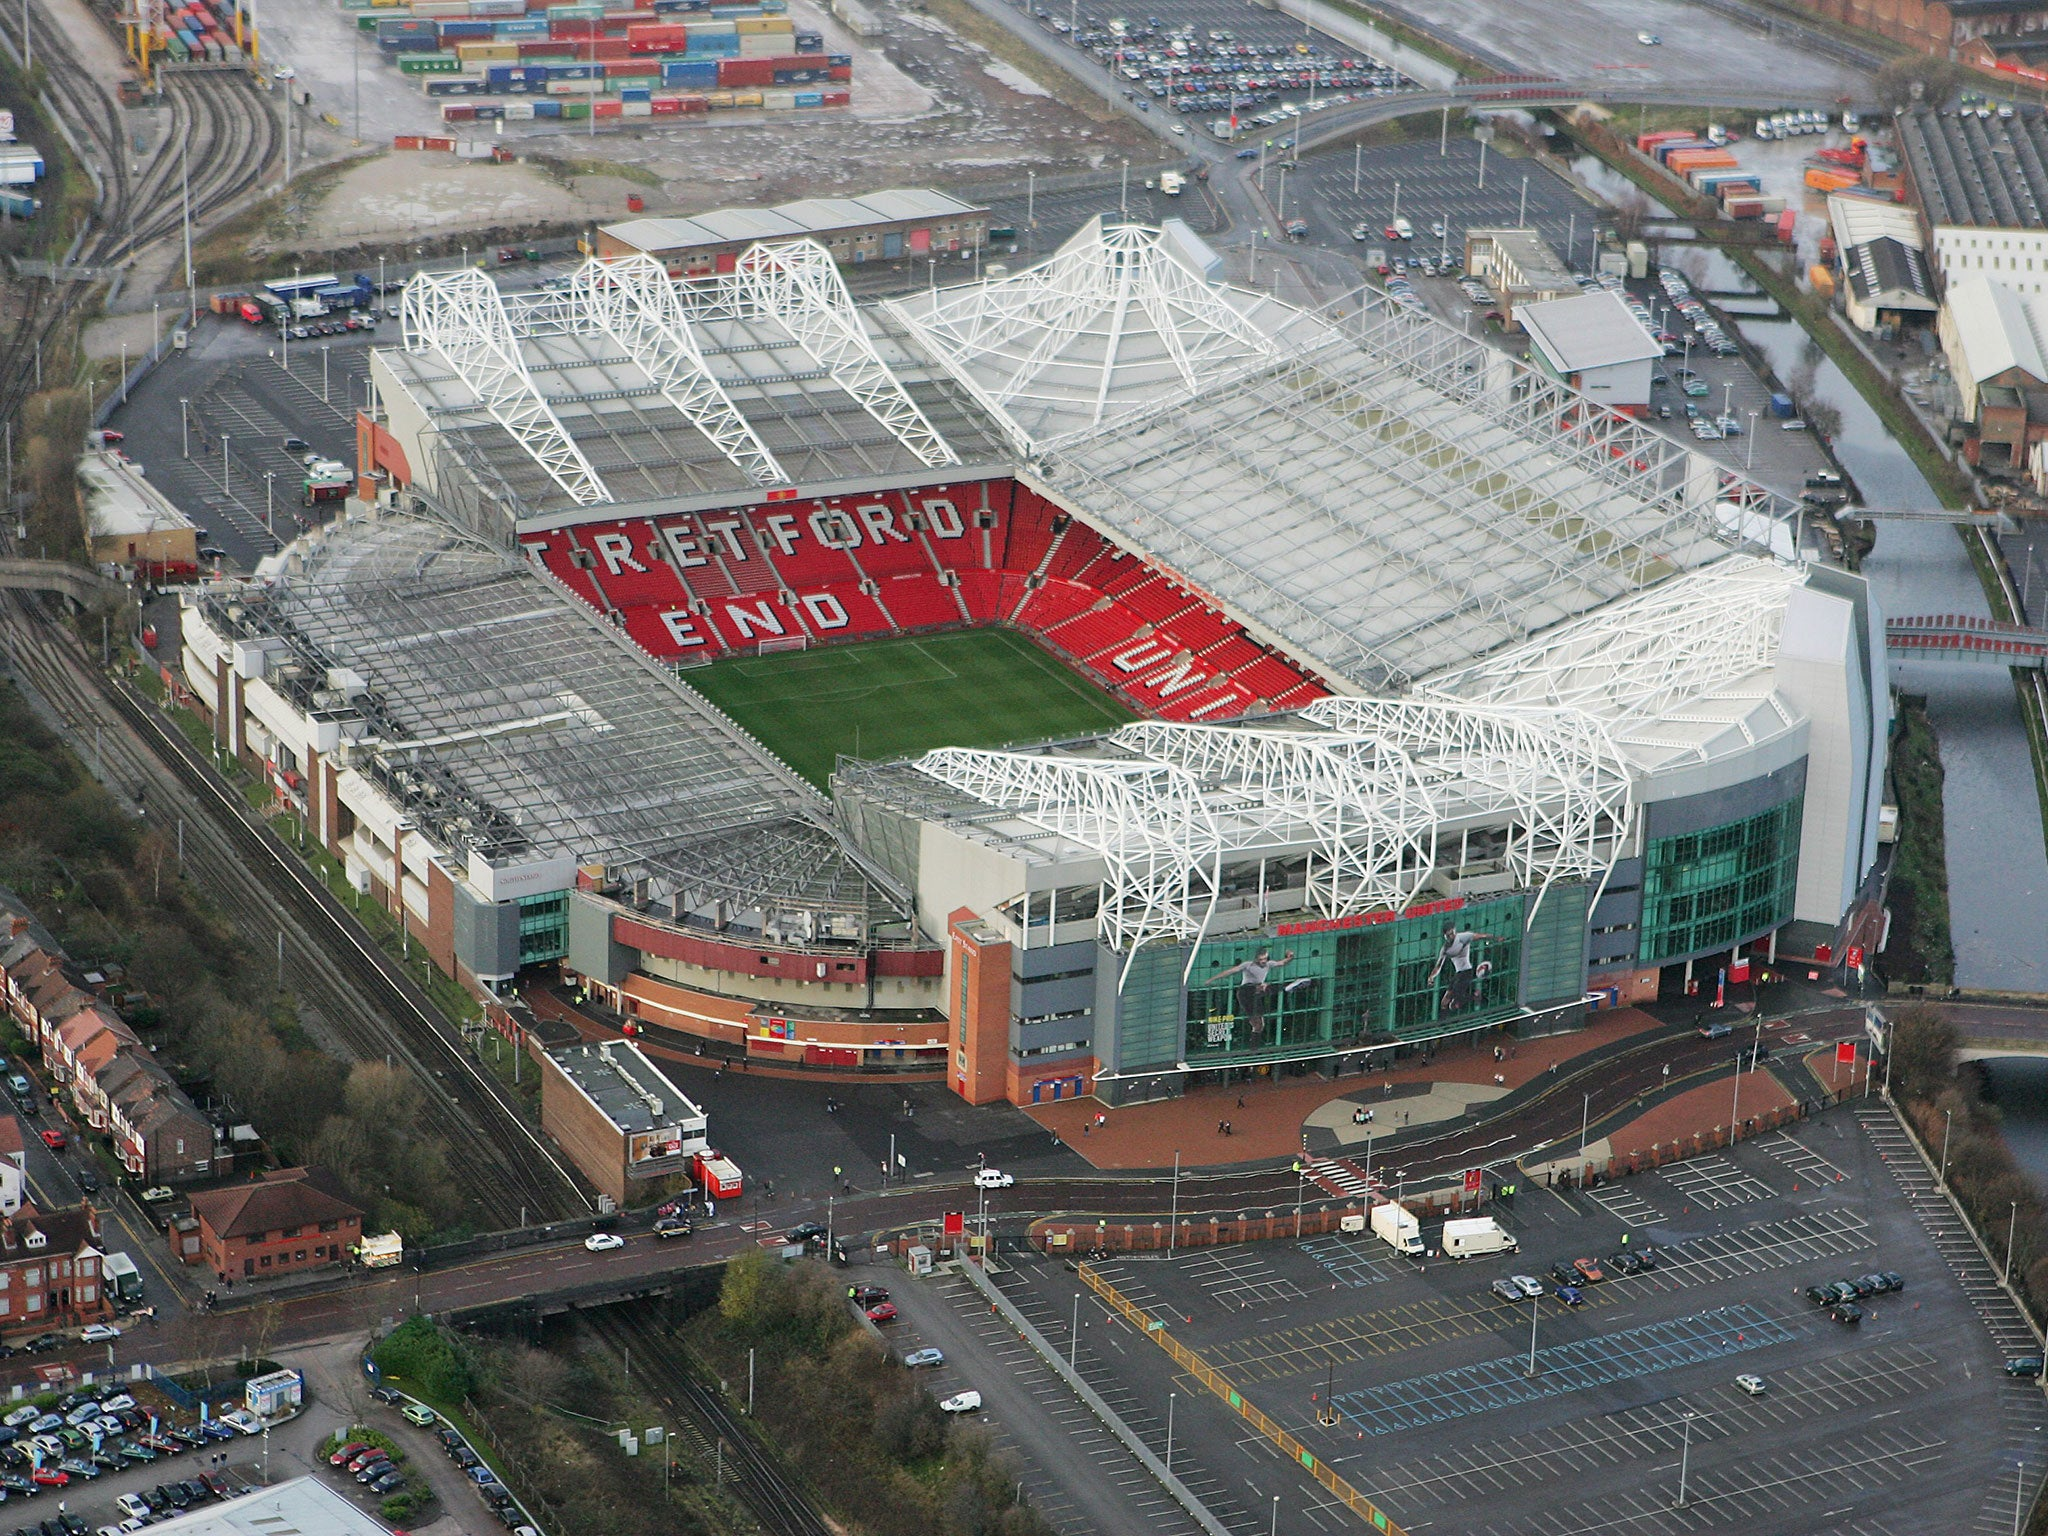 trafford online dating Old trafford officially opened on 19 february 1910 with a match between  manchester and  tickets for manchester united games can only be bought  online.